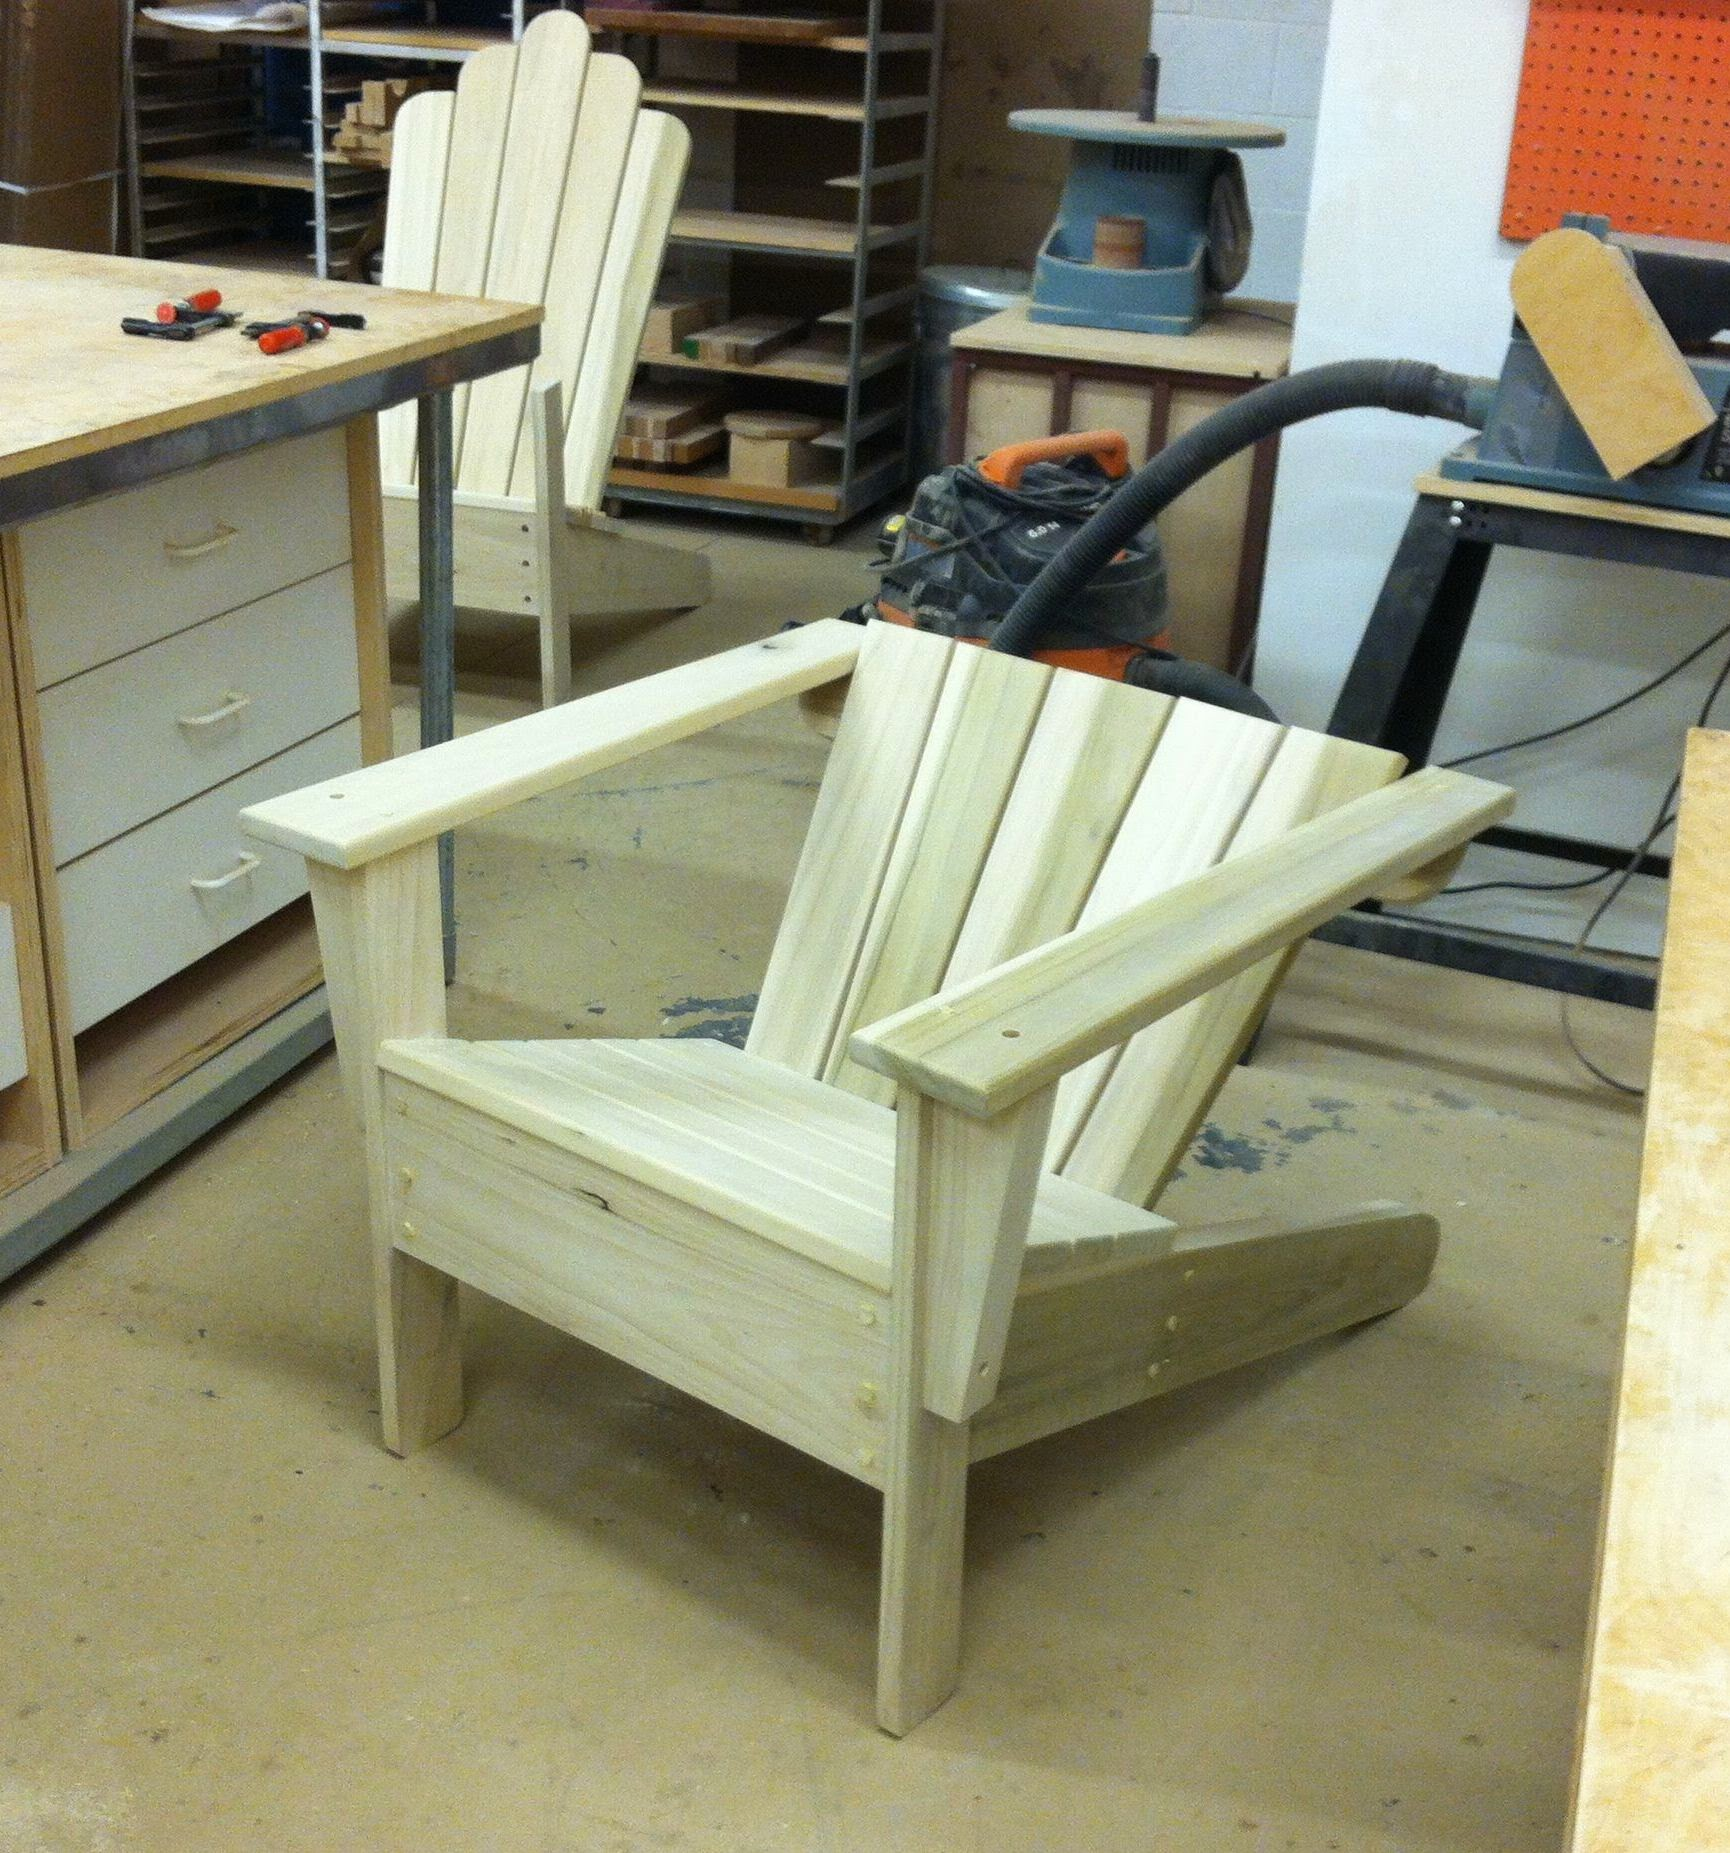 Woodworking classes in Las Vegas Course Descriptions